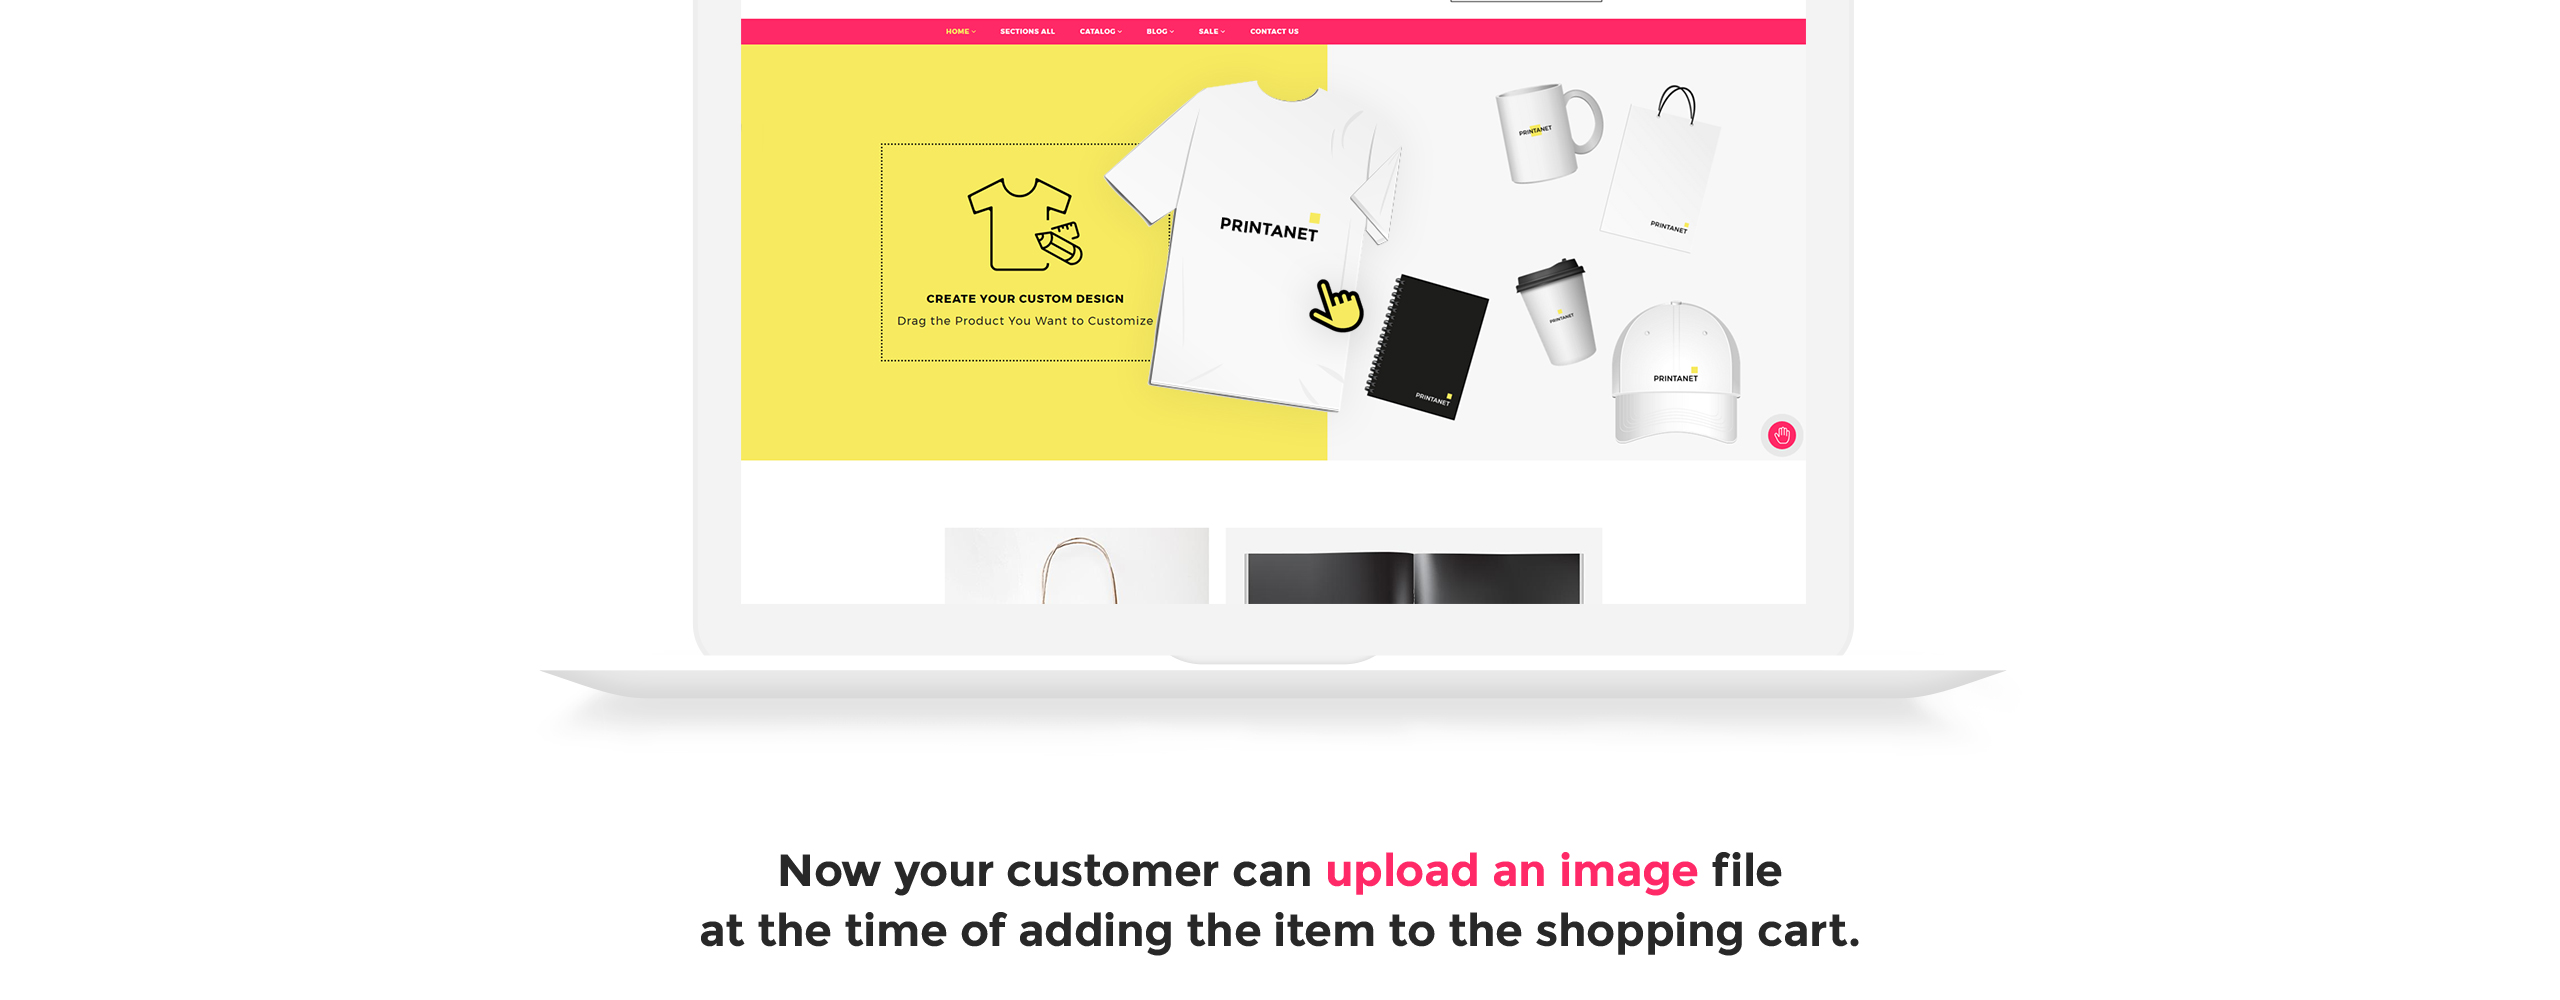 Printanet - Accessories Online Store Shopify Theme